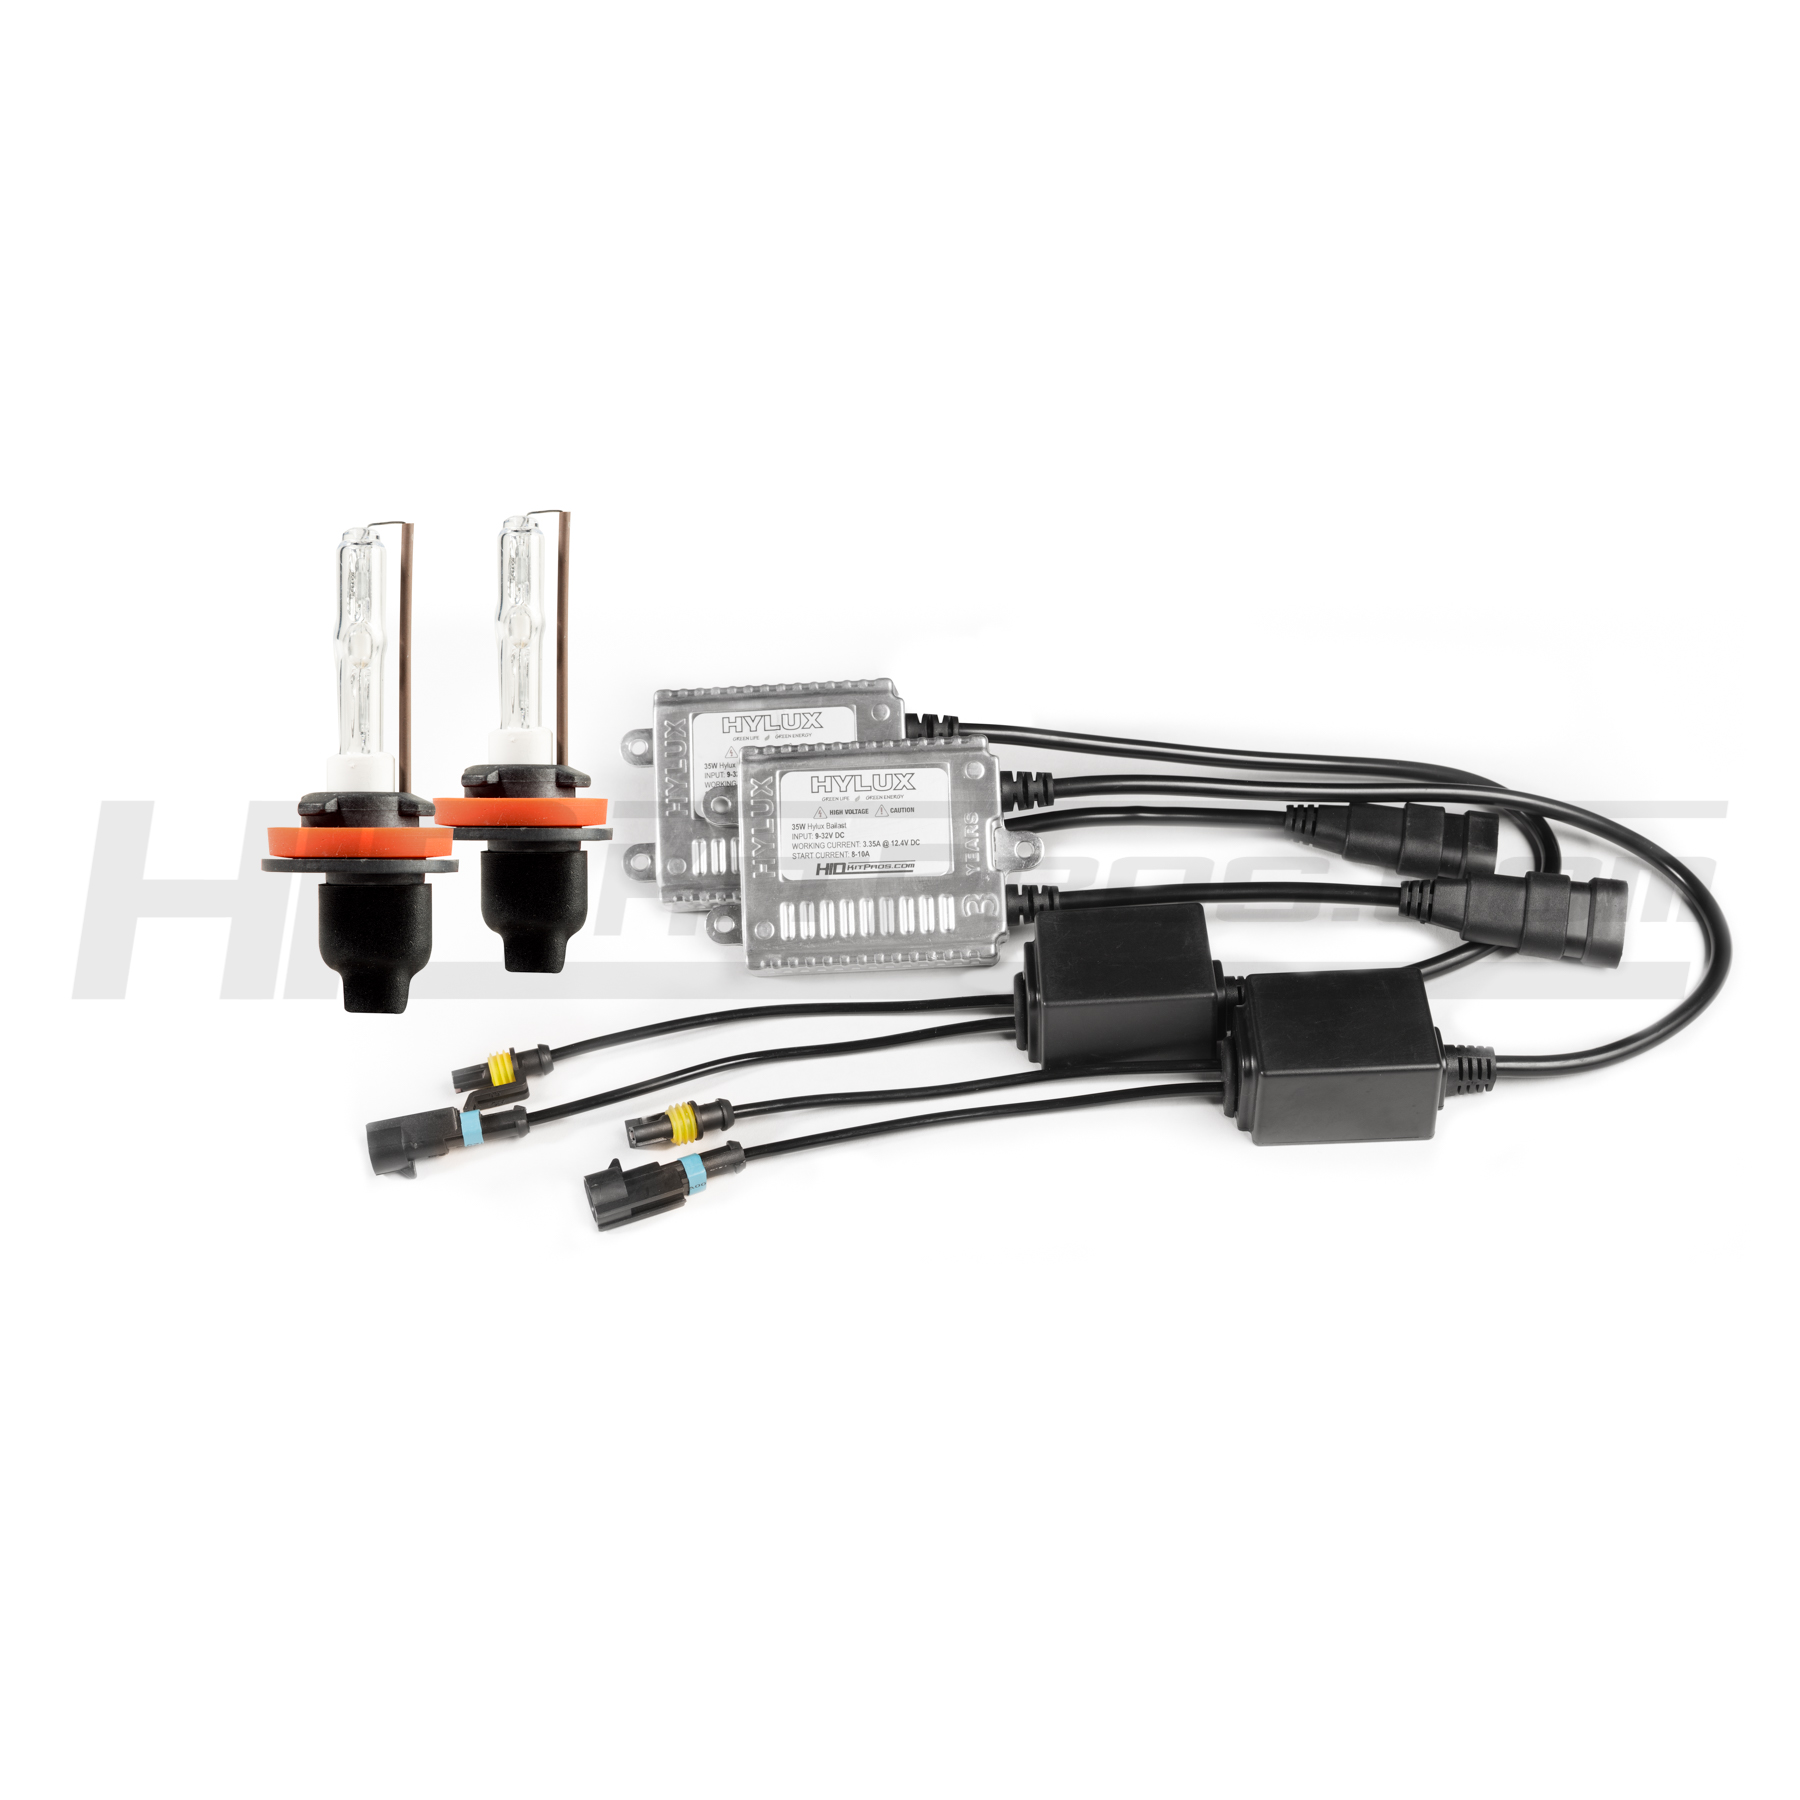 hylux xenon quick start hid kit hid kit proshylux xenon quick start hid kit